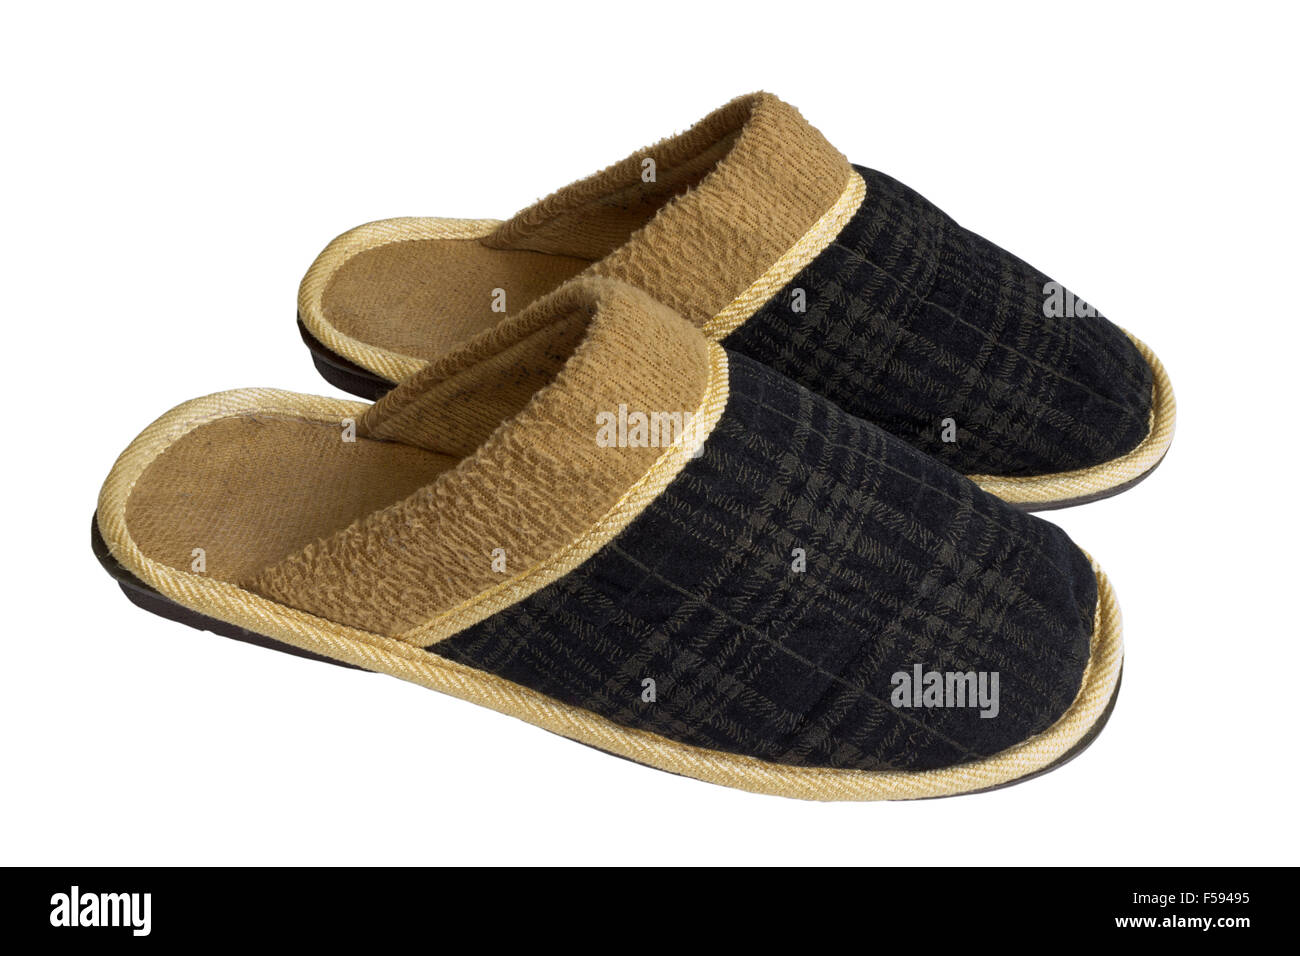 Pair of home slippers - Stock Image